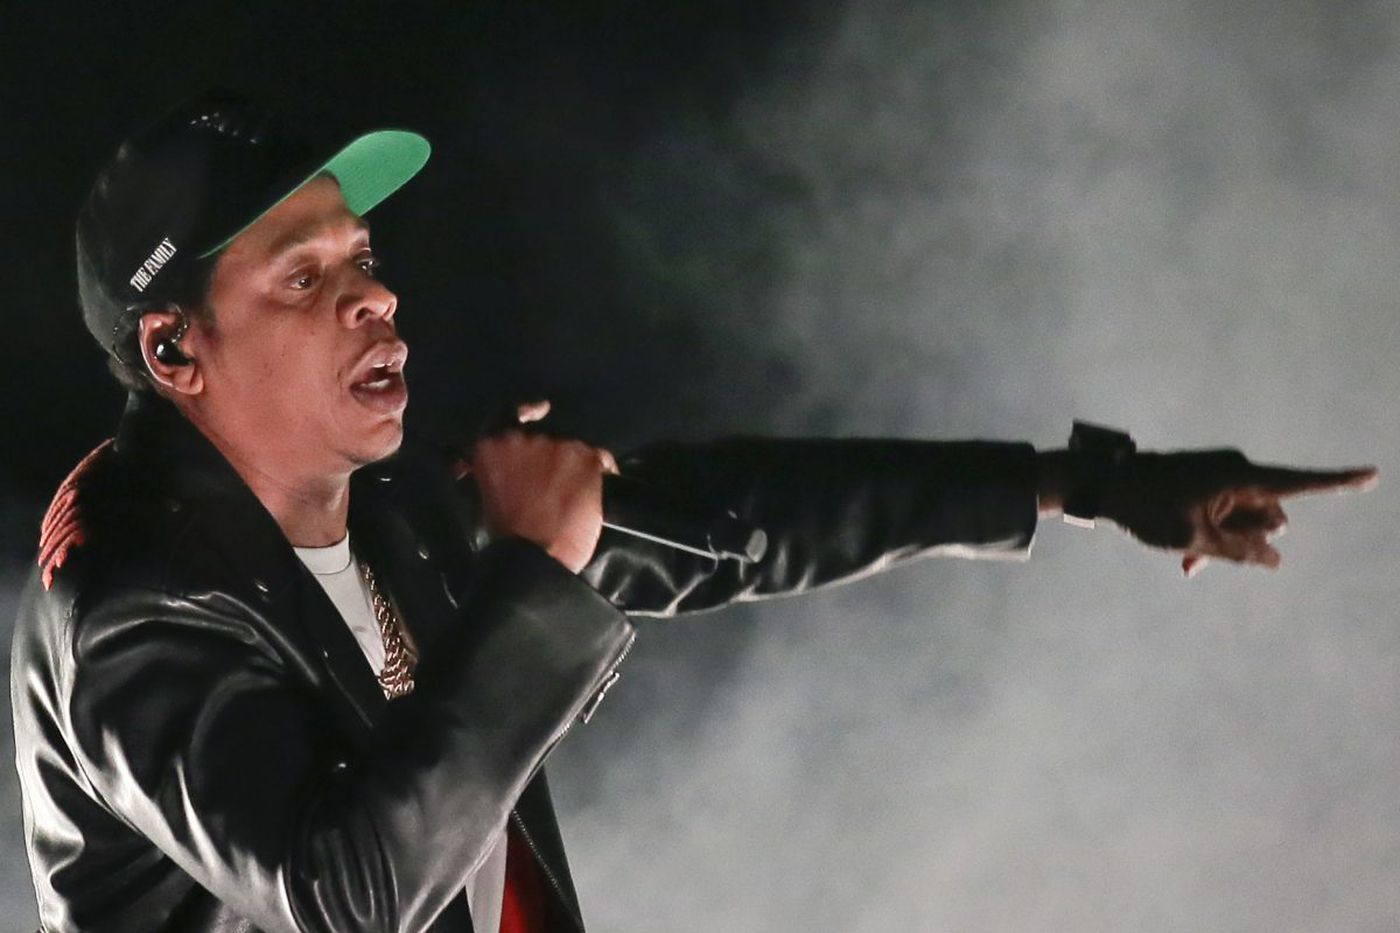 Jay-Z (and Joel Embiid) speak up for Meek Mill at Wells Fargo Center